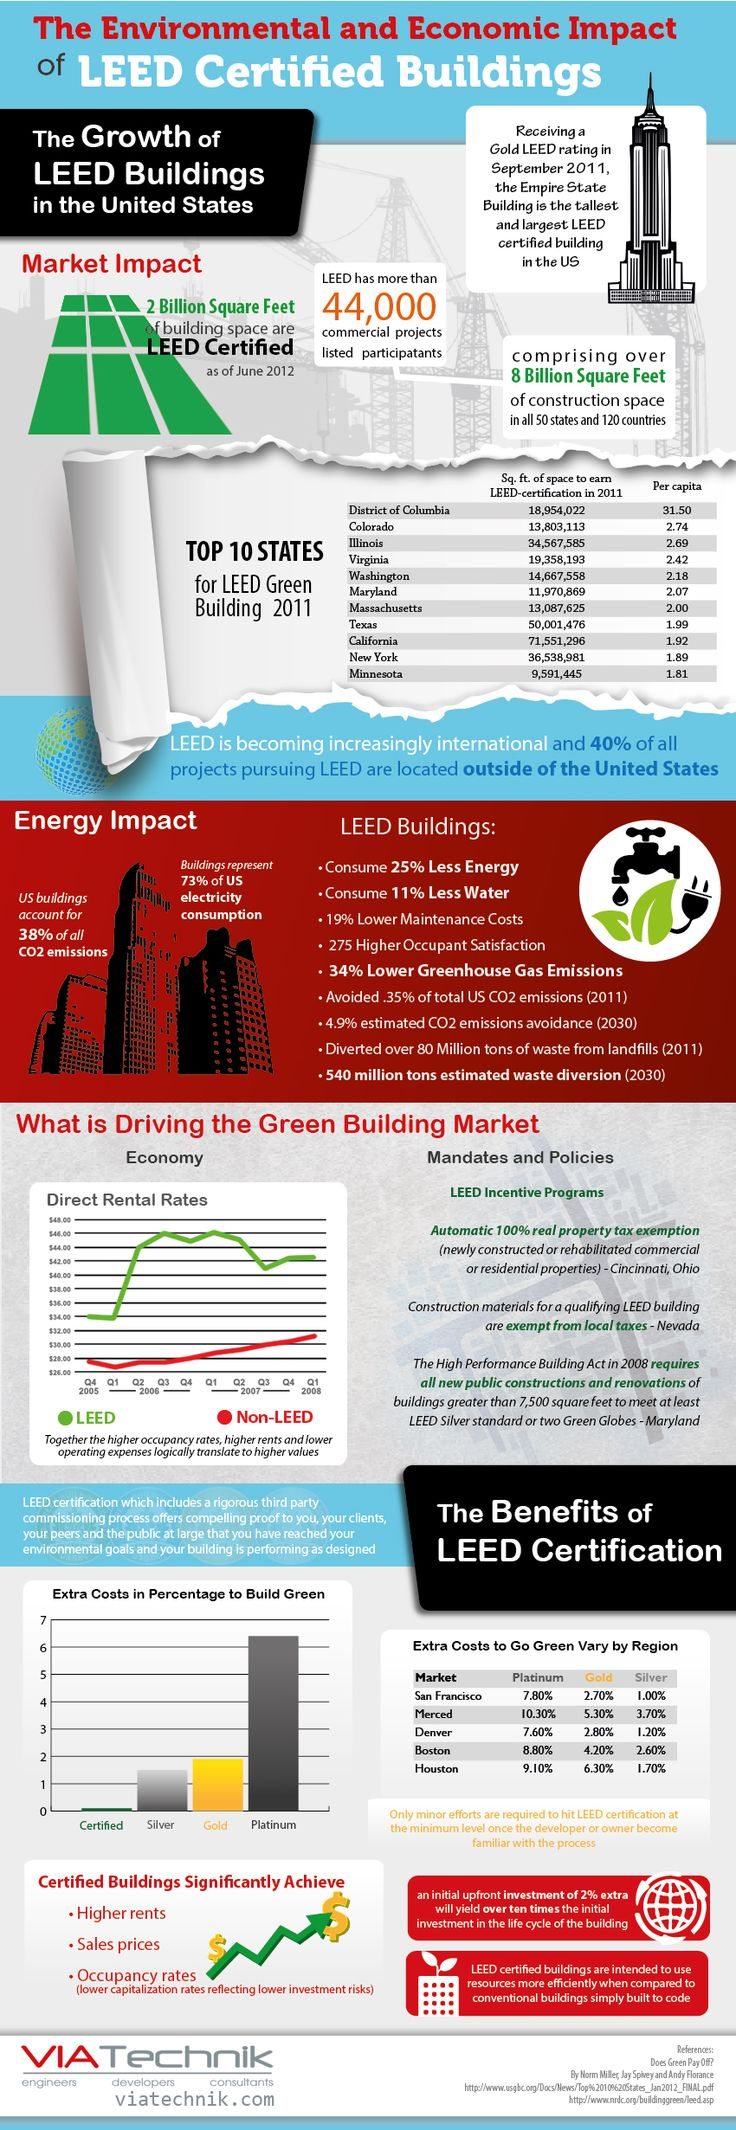 25 best ideas about leed certification on pinterest eco for Leed certified house plans